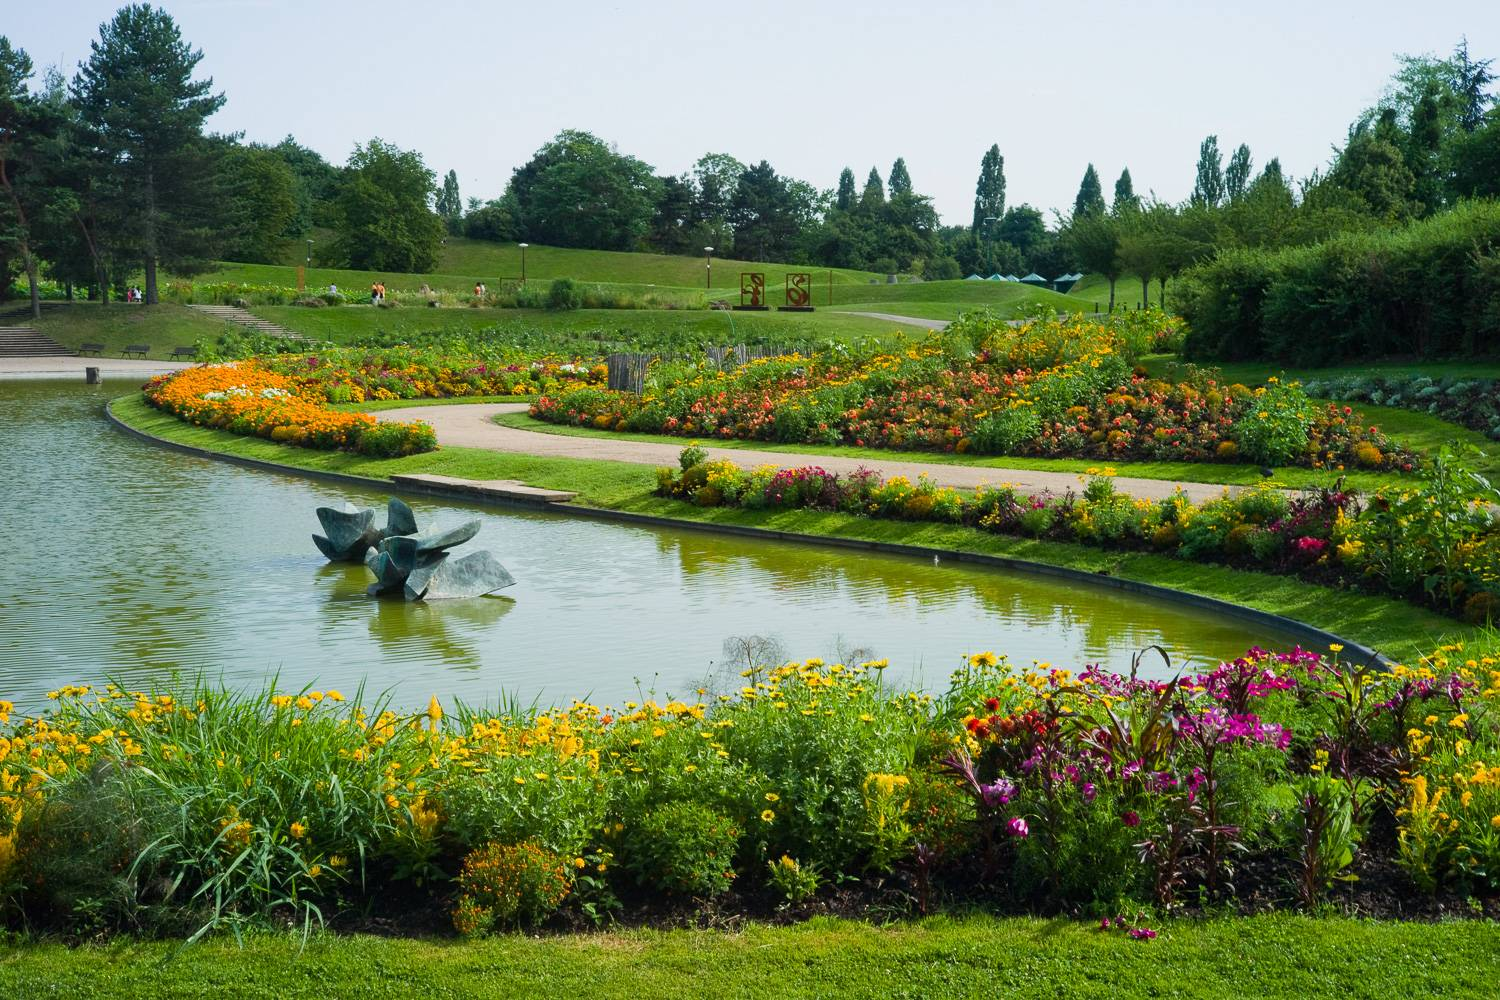 Image of Parc Floral de Paris in the spring.